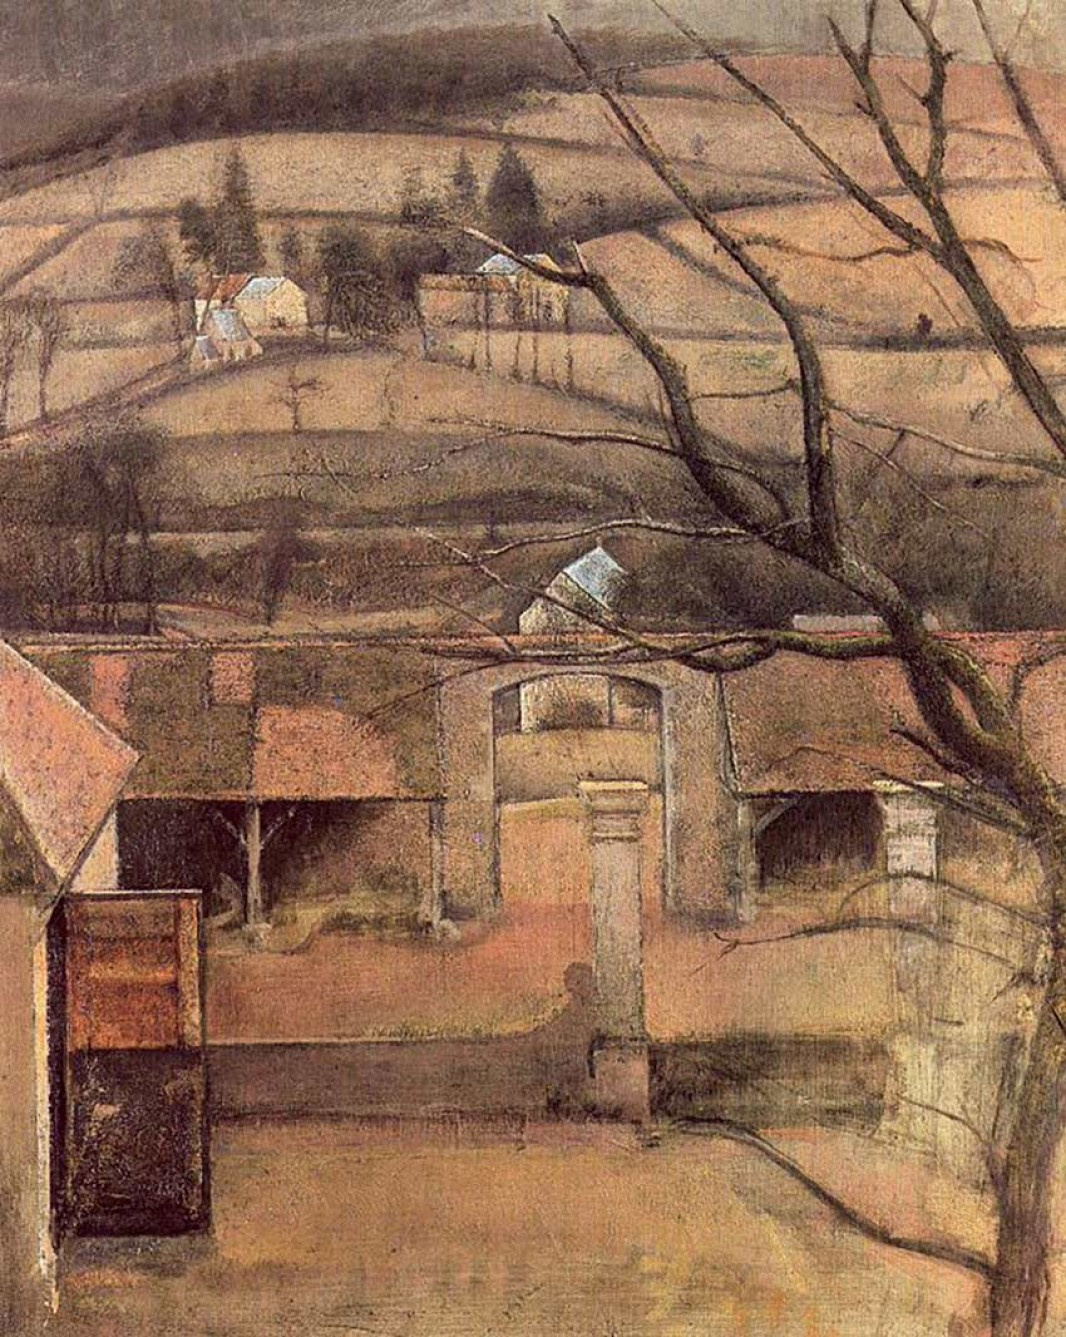 Balthus (Balthasar Klossovsky de Rola). Landscape and courtyard in the Chateau de Chassis